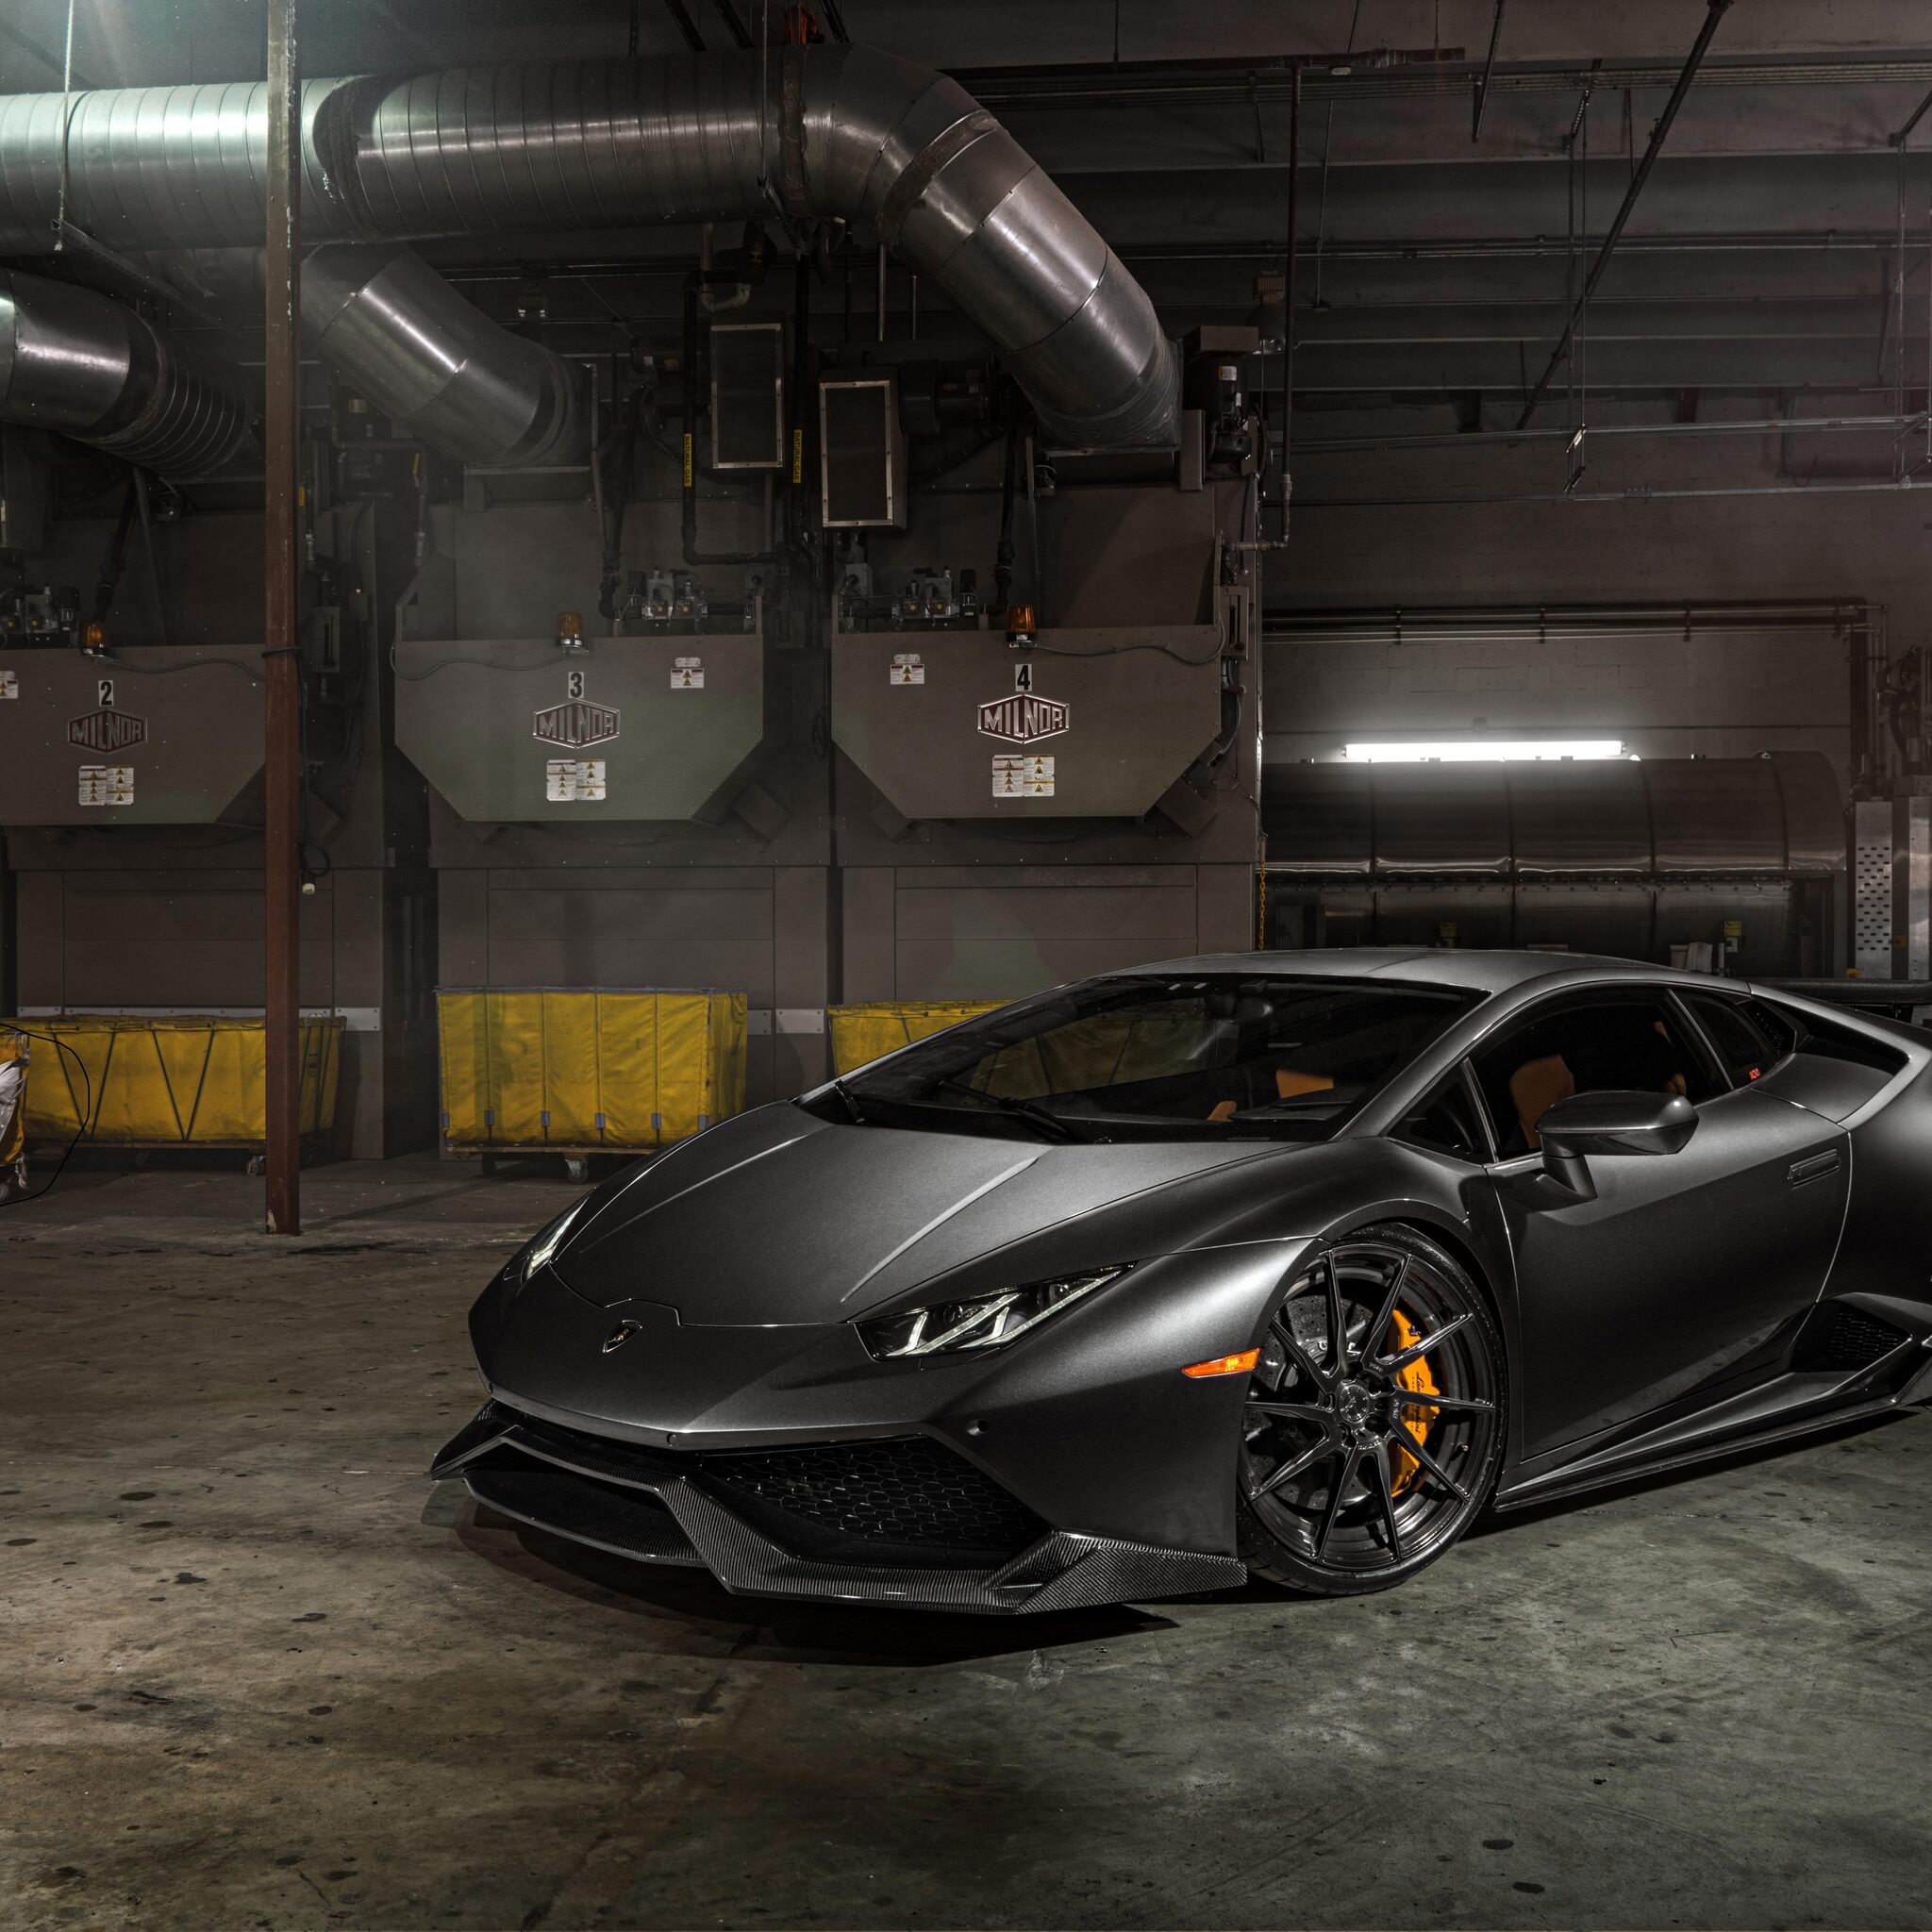 download lamborghini huracan 8k hd 4k wallpapers in 2048x2048 screen resolution. Black Bedroom Furniture Sets. Home Design Ideas